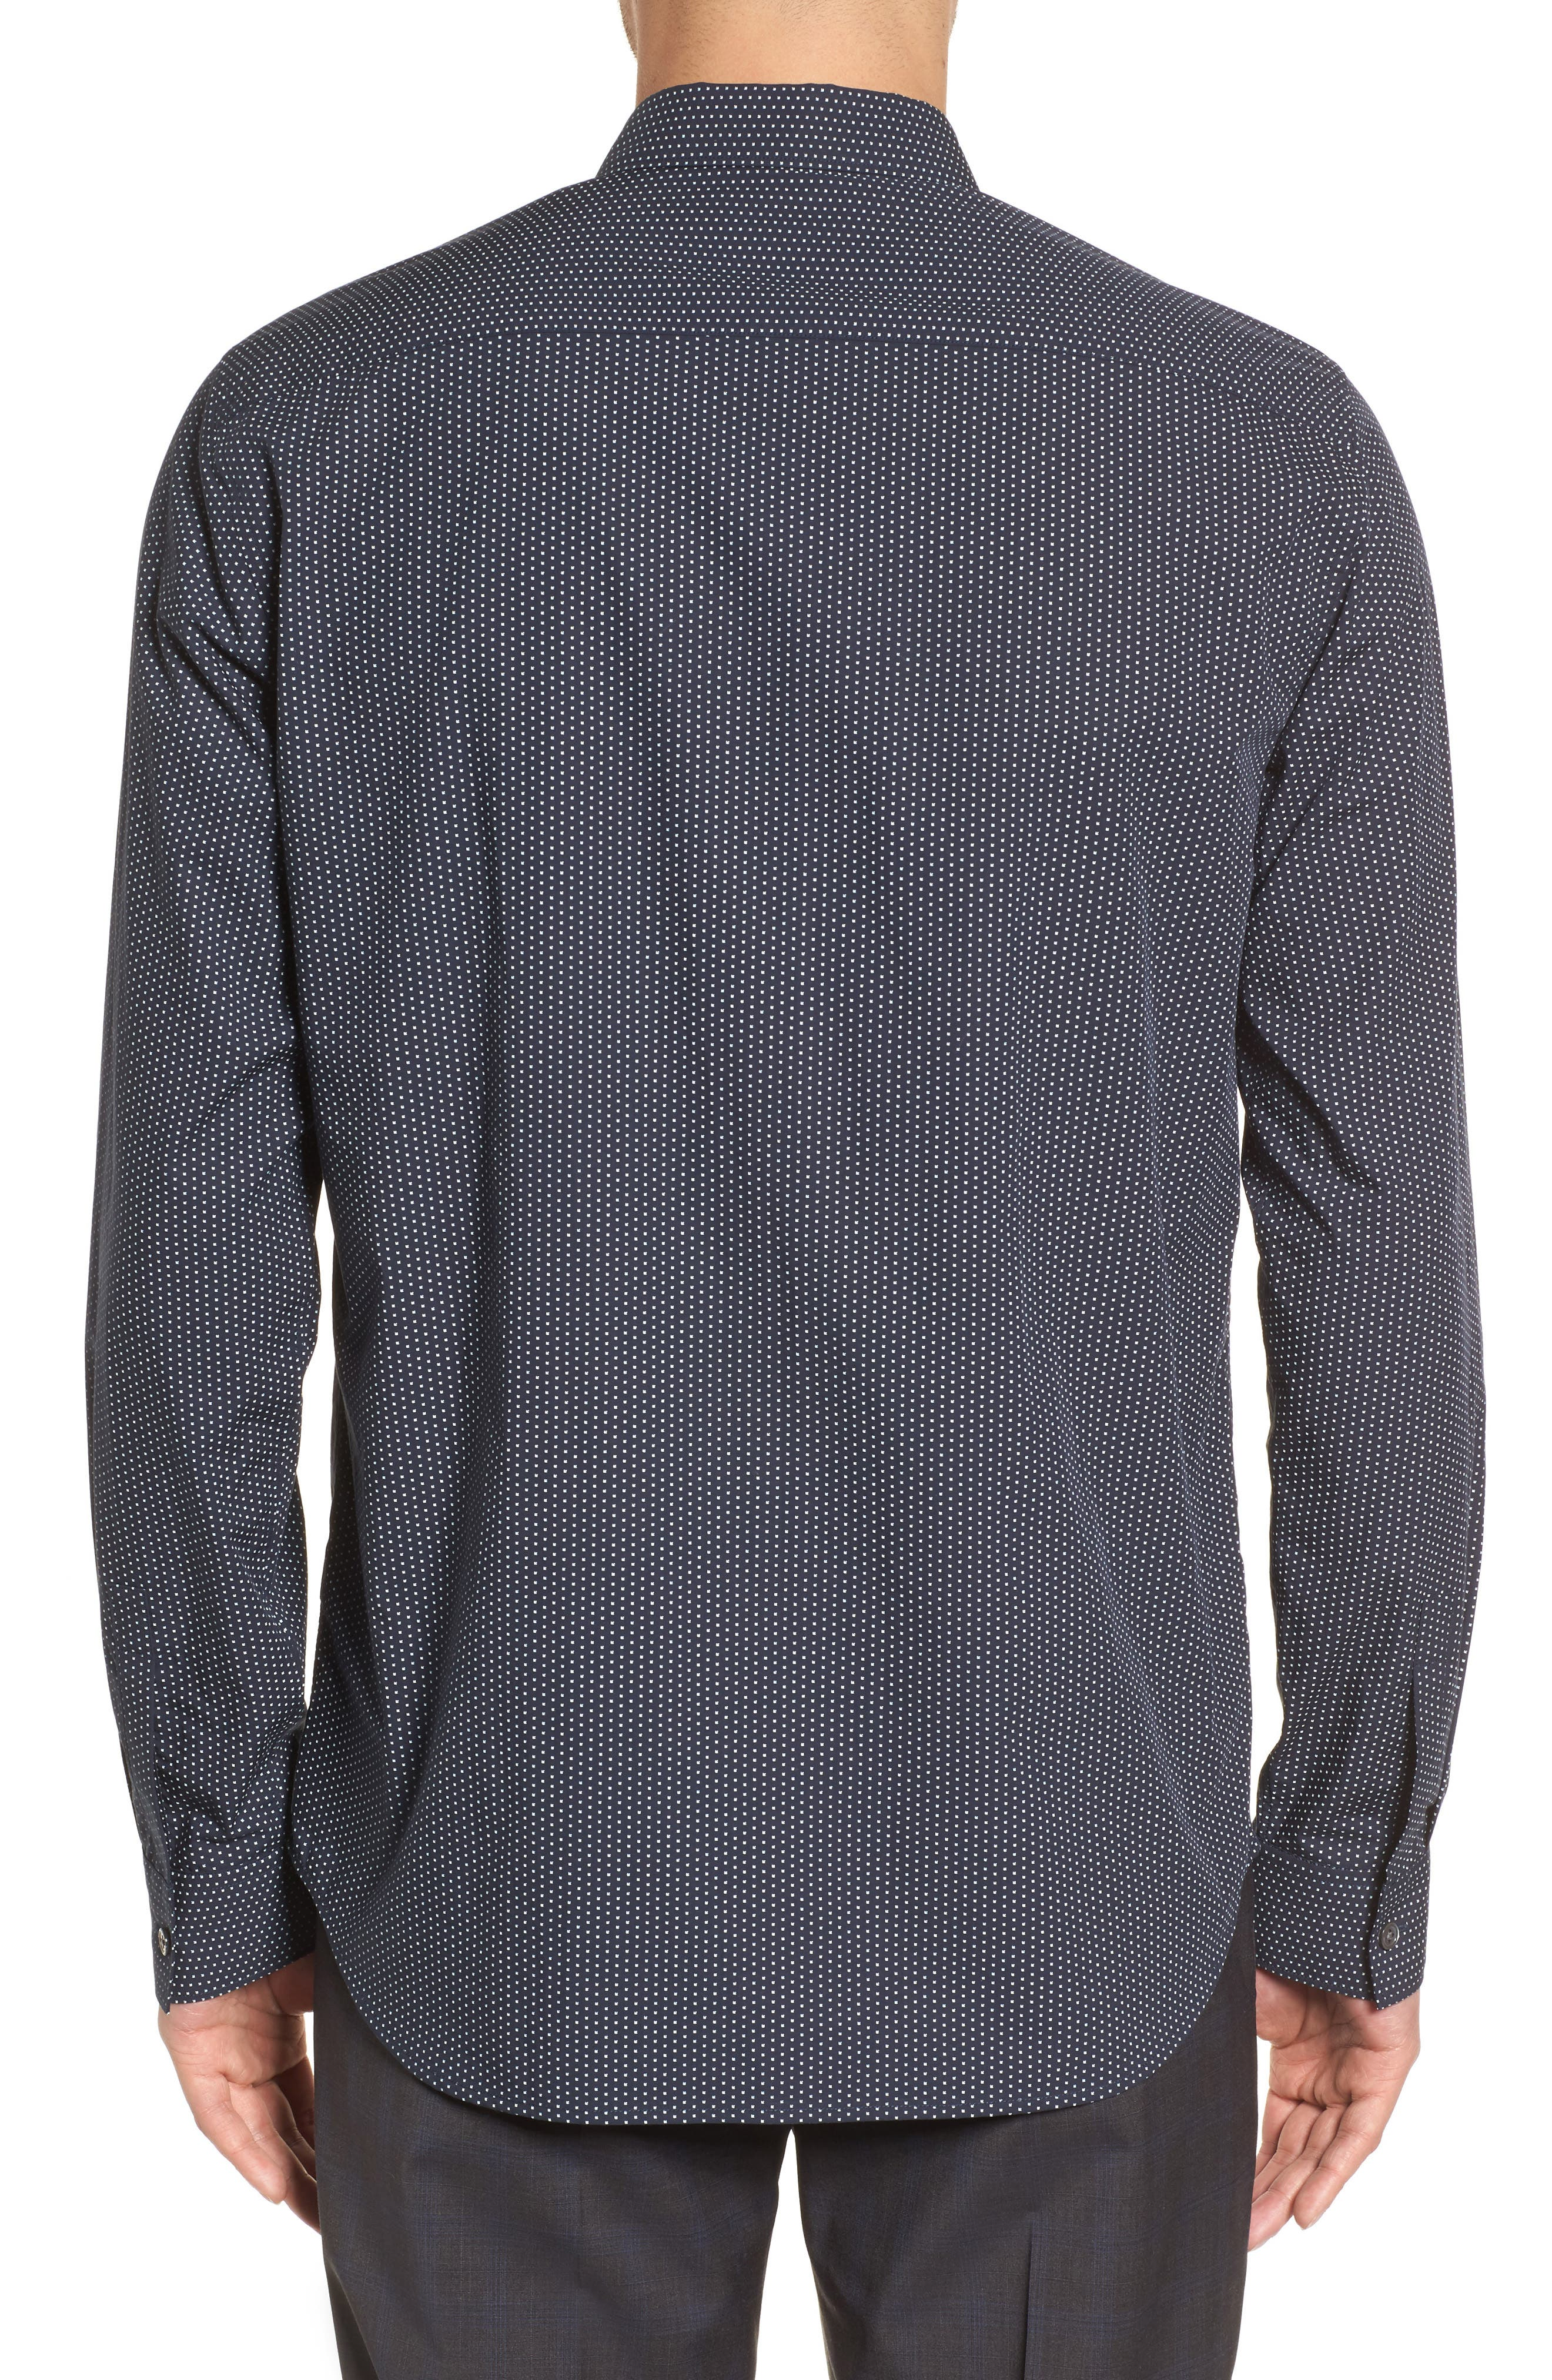 Murray Slim Fit Sport Shirt,                             Alternate thumbnail 2, color,                             Eclipse